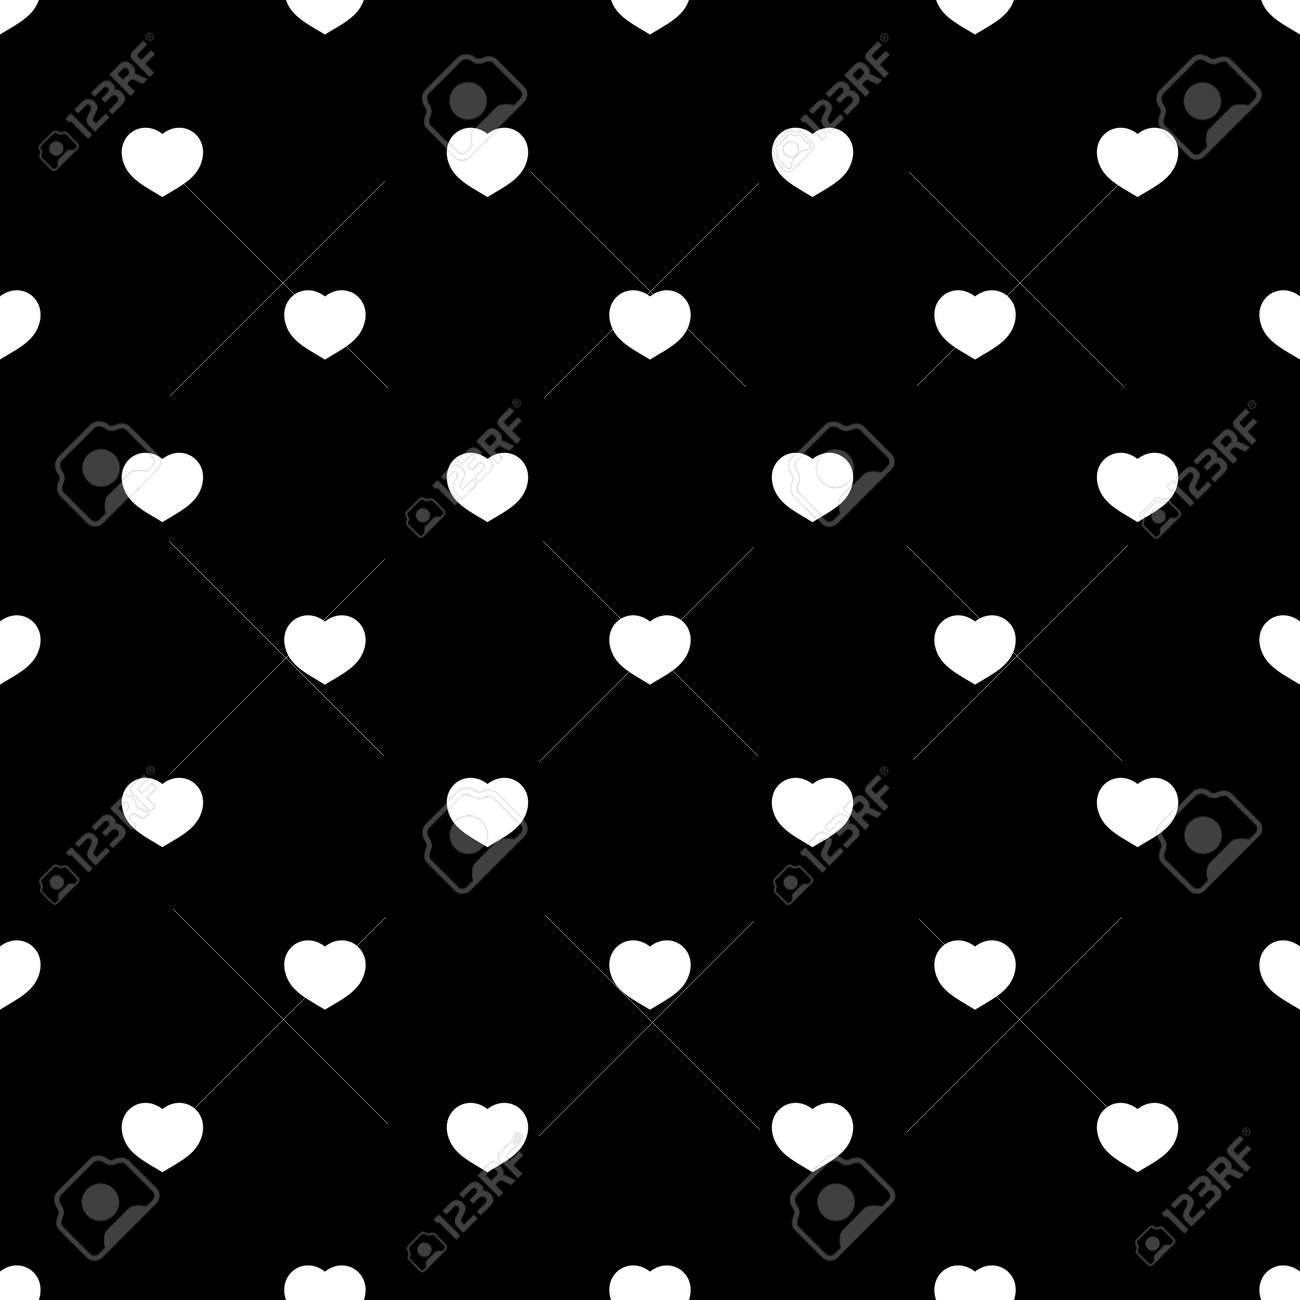 Must see Wallpaper Love Black And White - 50999258-white-hearts-seamless-pattern-on-black-background-fashion-love-graphics-design-modern-stylish-textur  Best Photo Reference_4857.jpg